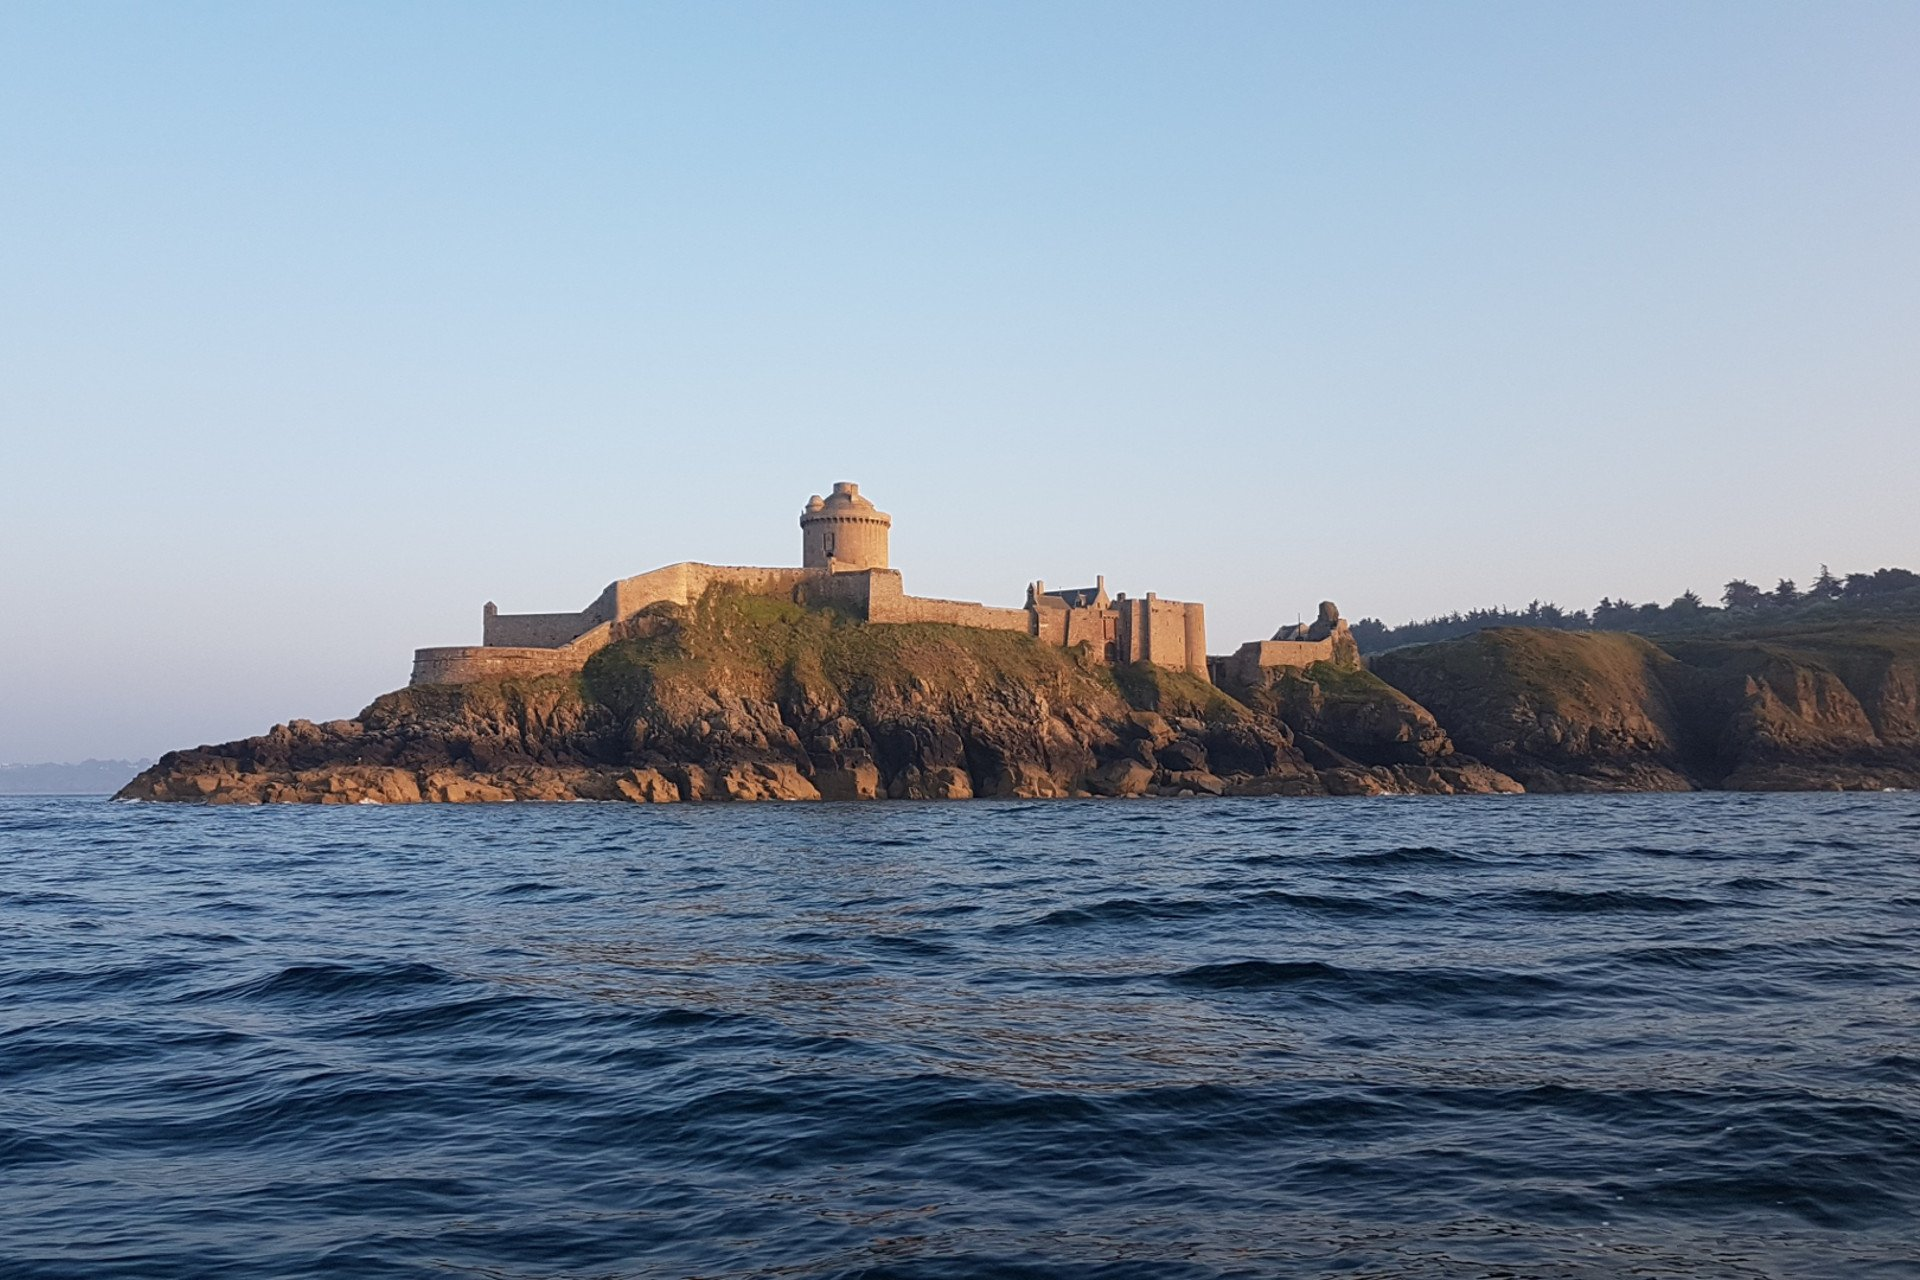 fort de la latte near cap frehel